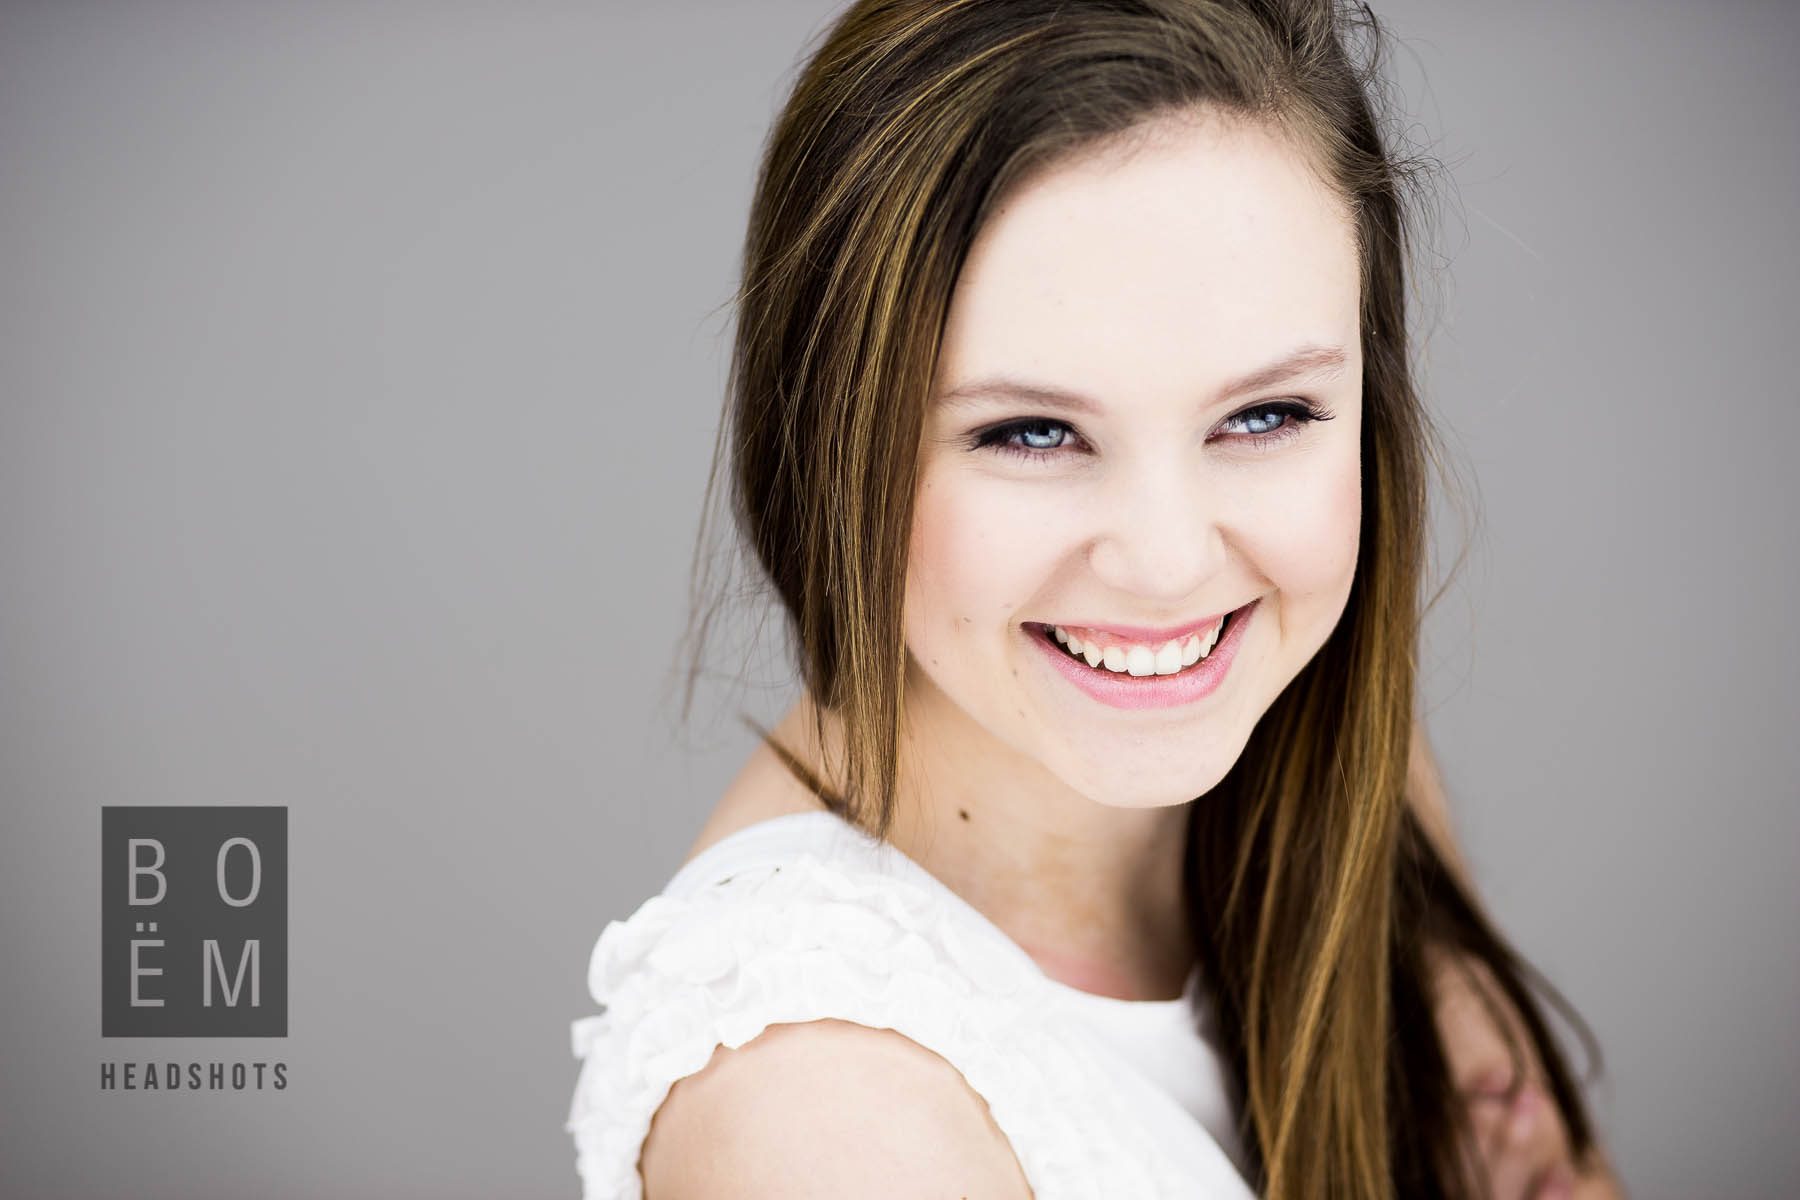 A Sneak peek at my session with Tayla, an Actress here in Adelaide by Andre Goosen for Boem Headshots